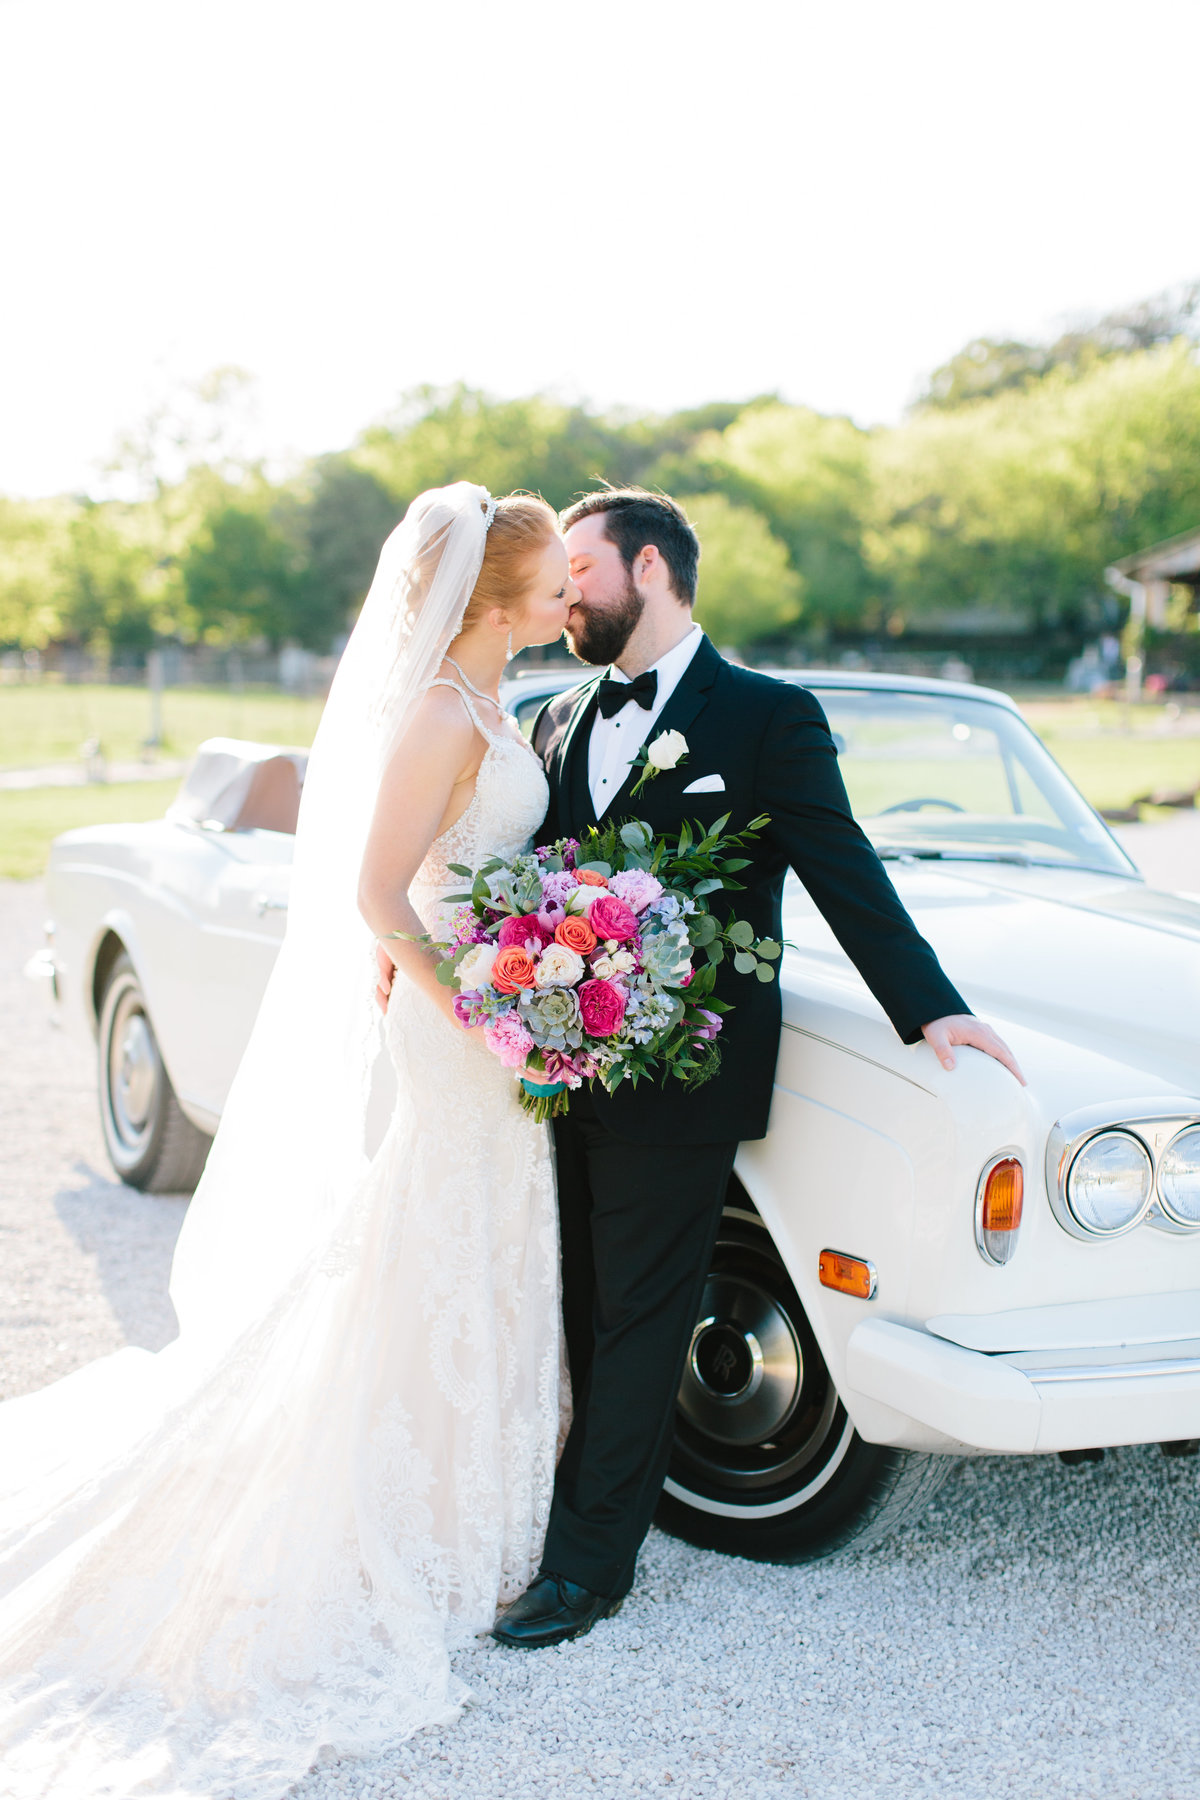 Bride and Groom kissing against their getaway vintage car.